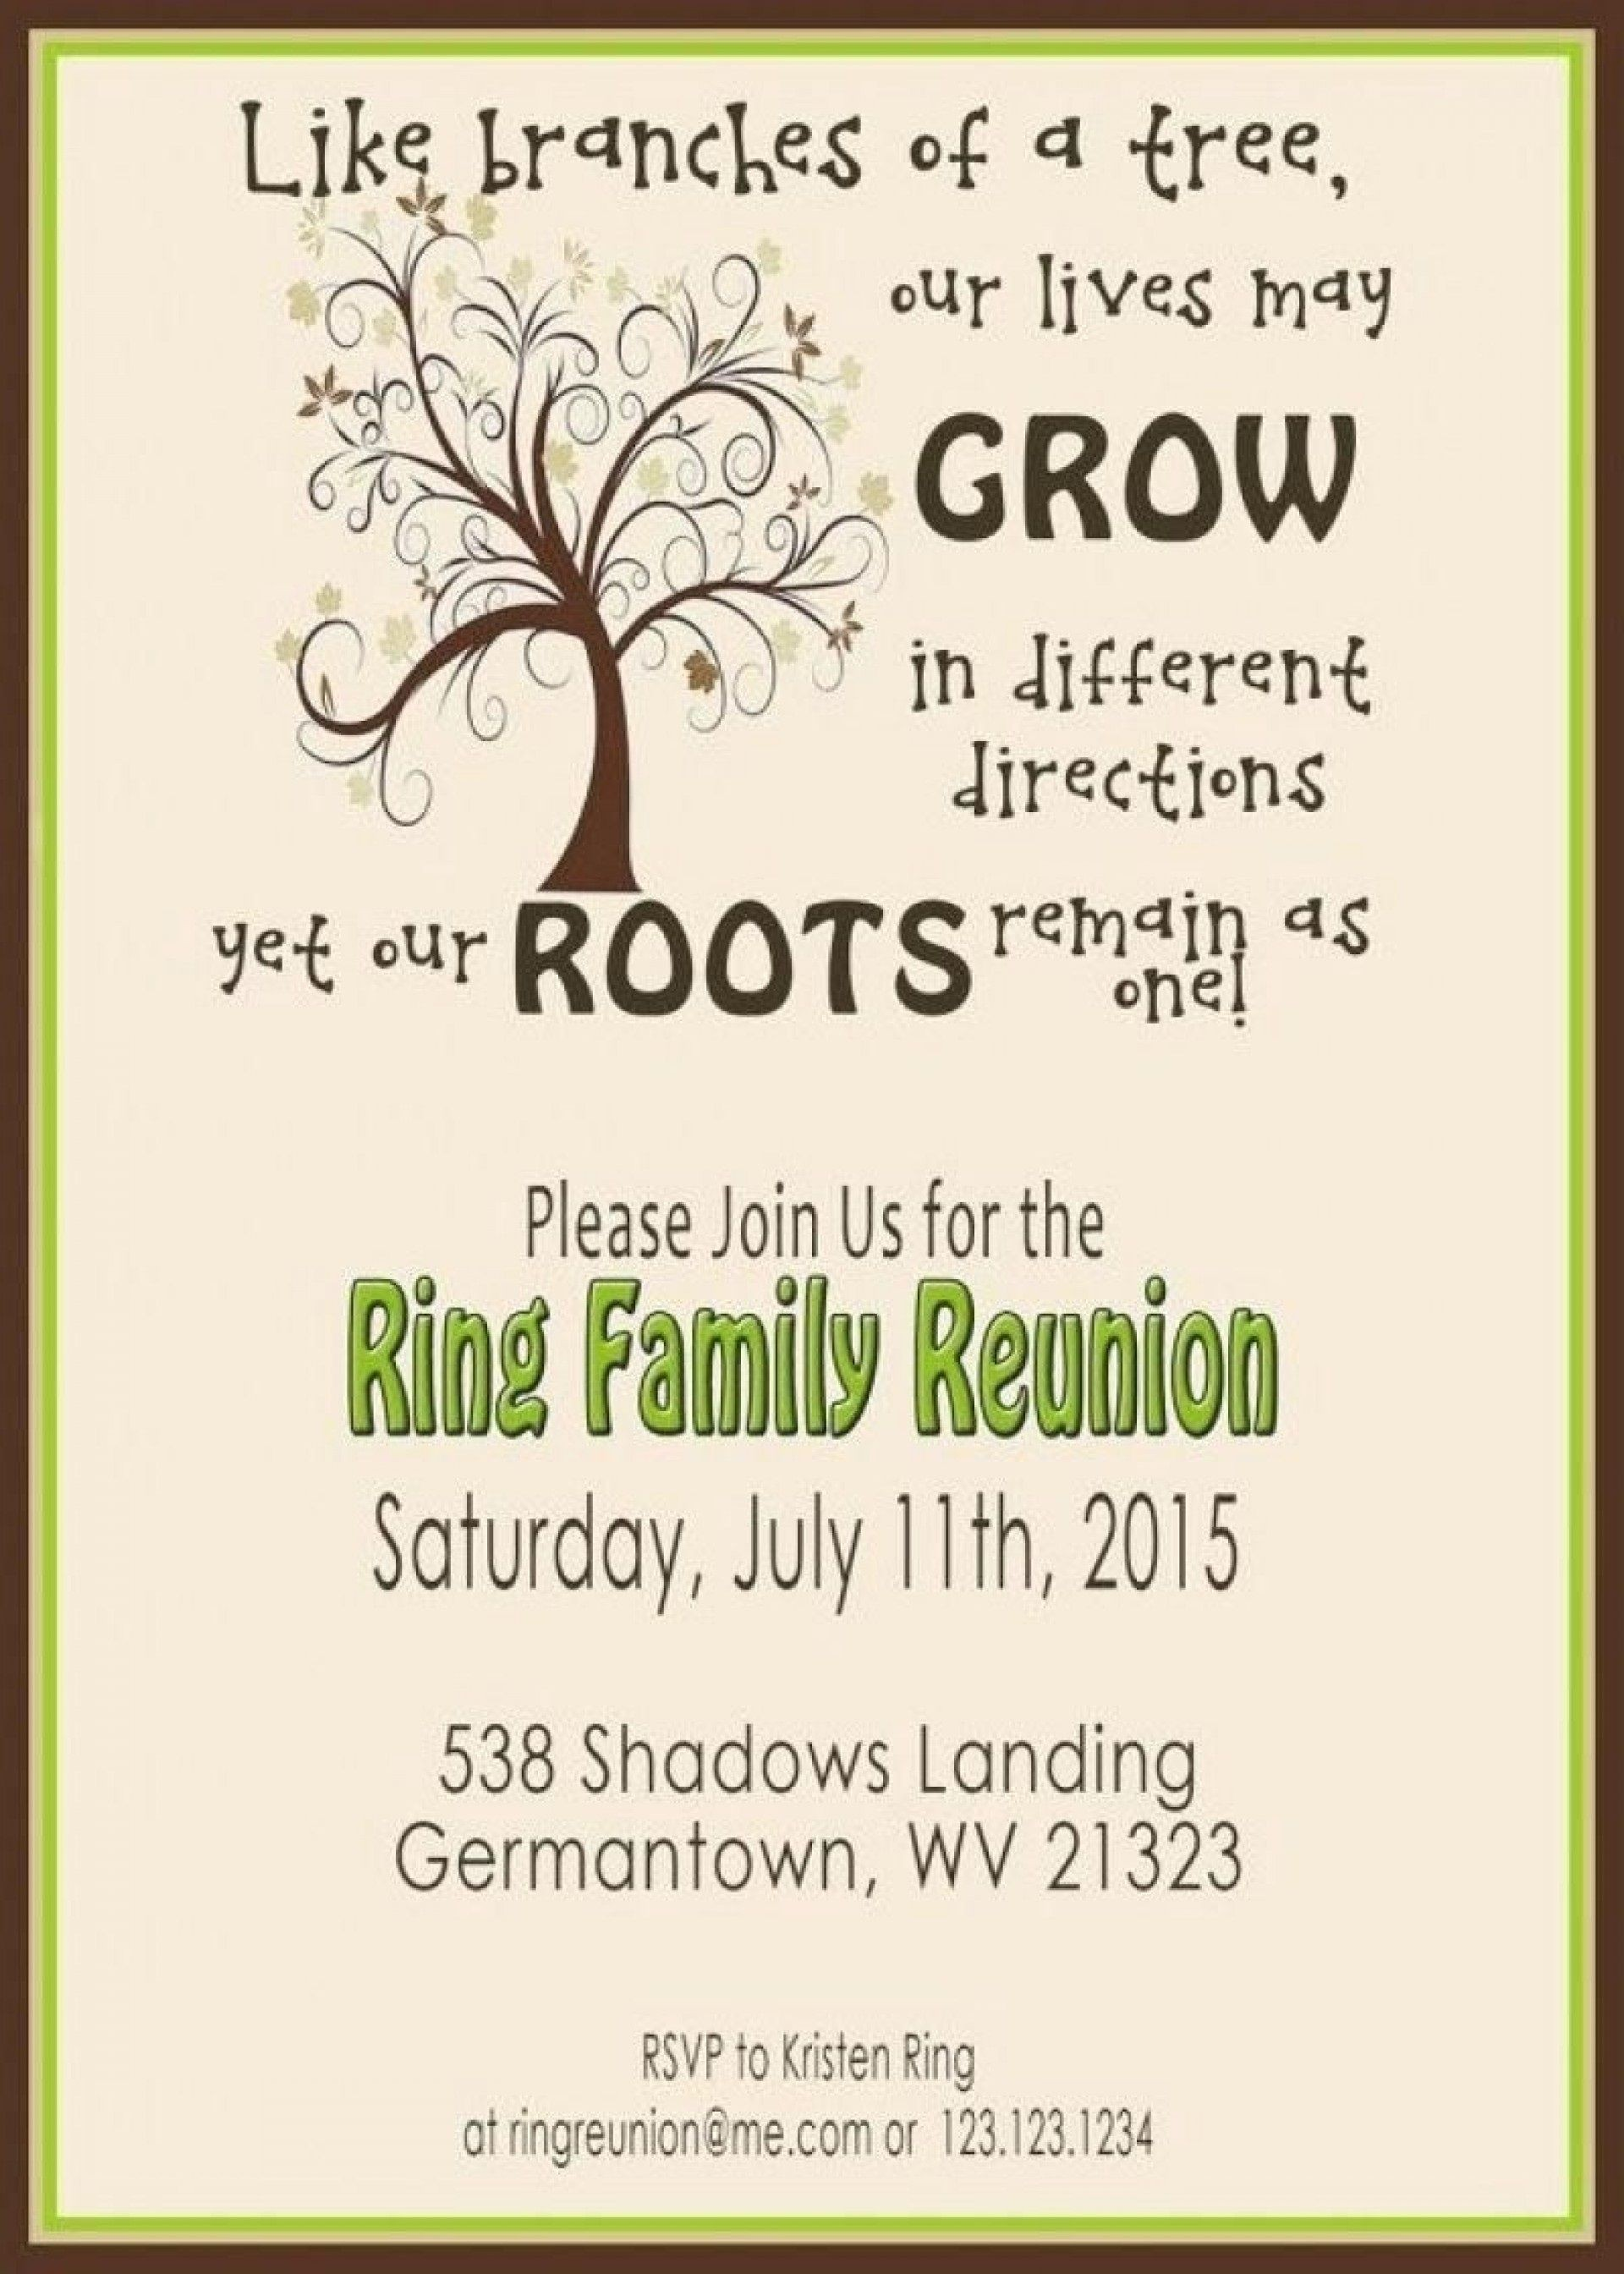 009 Awful Family Reunion Flyer Template Word Example 1920